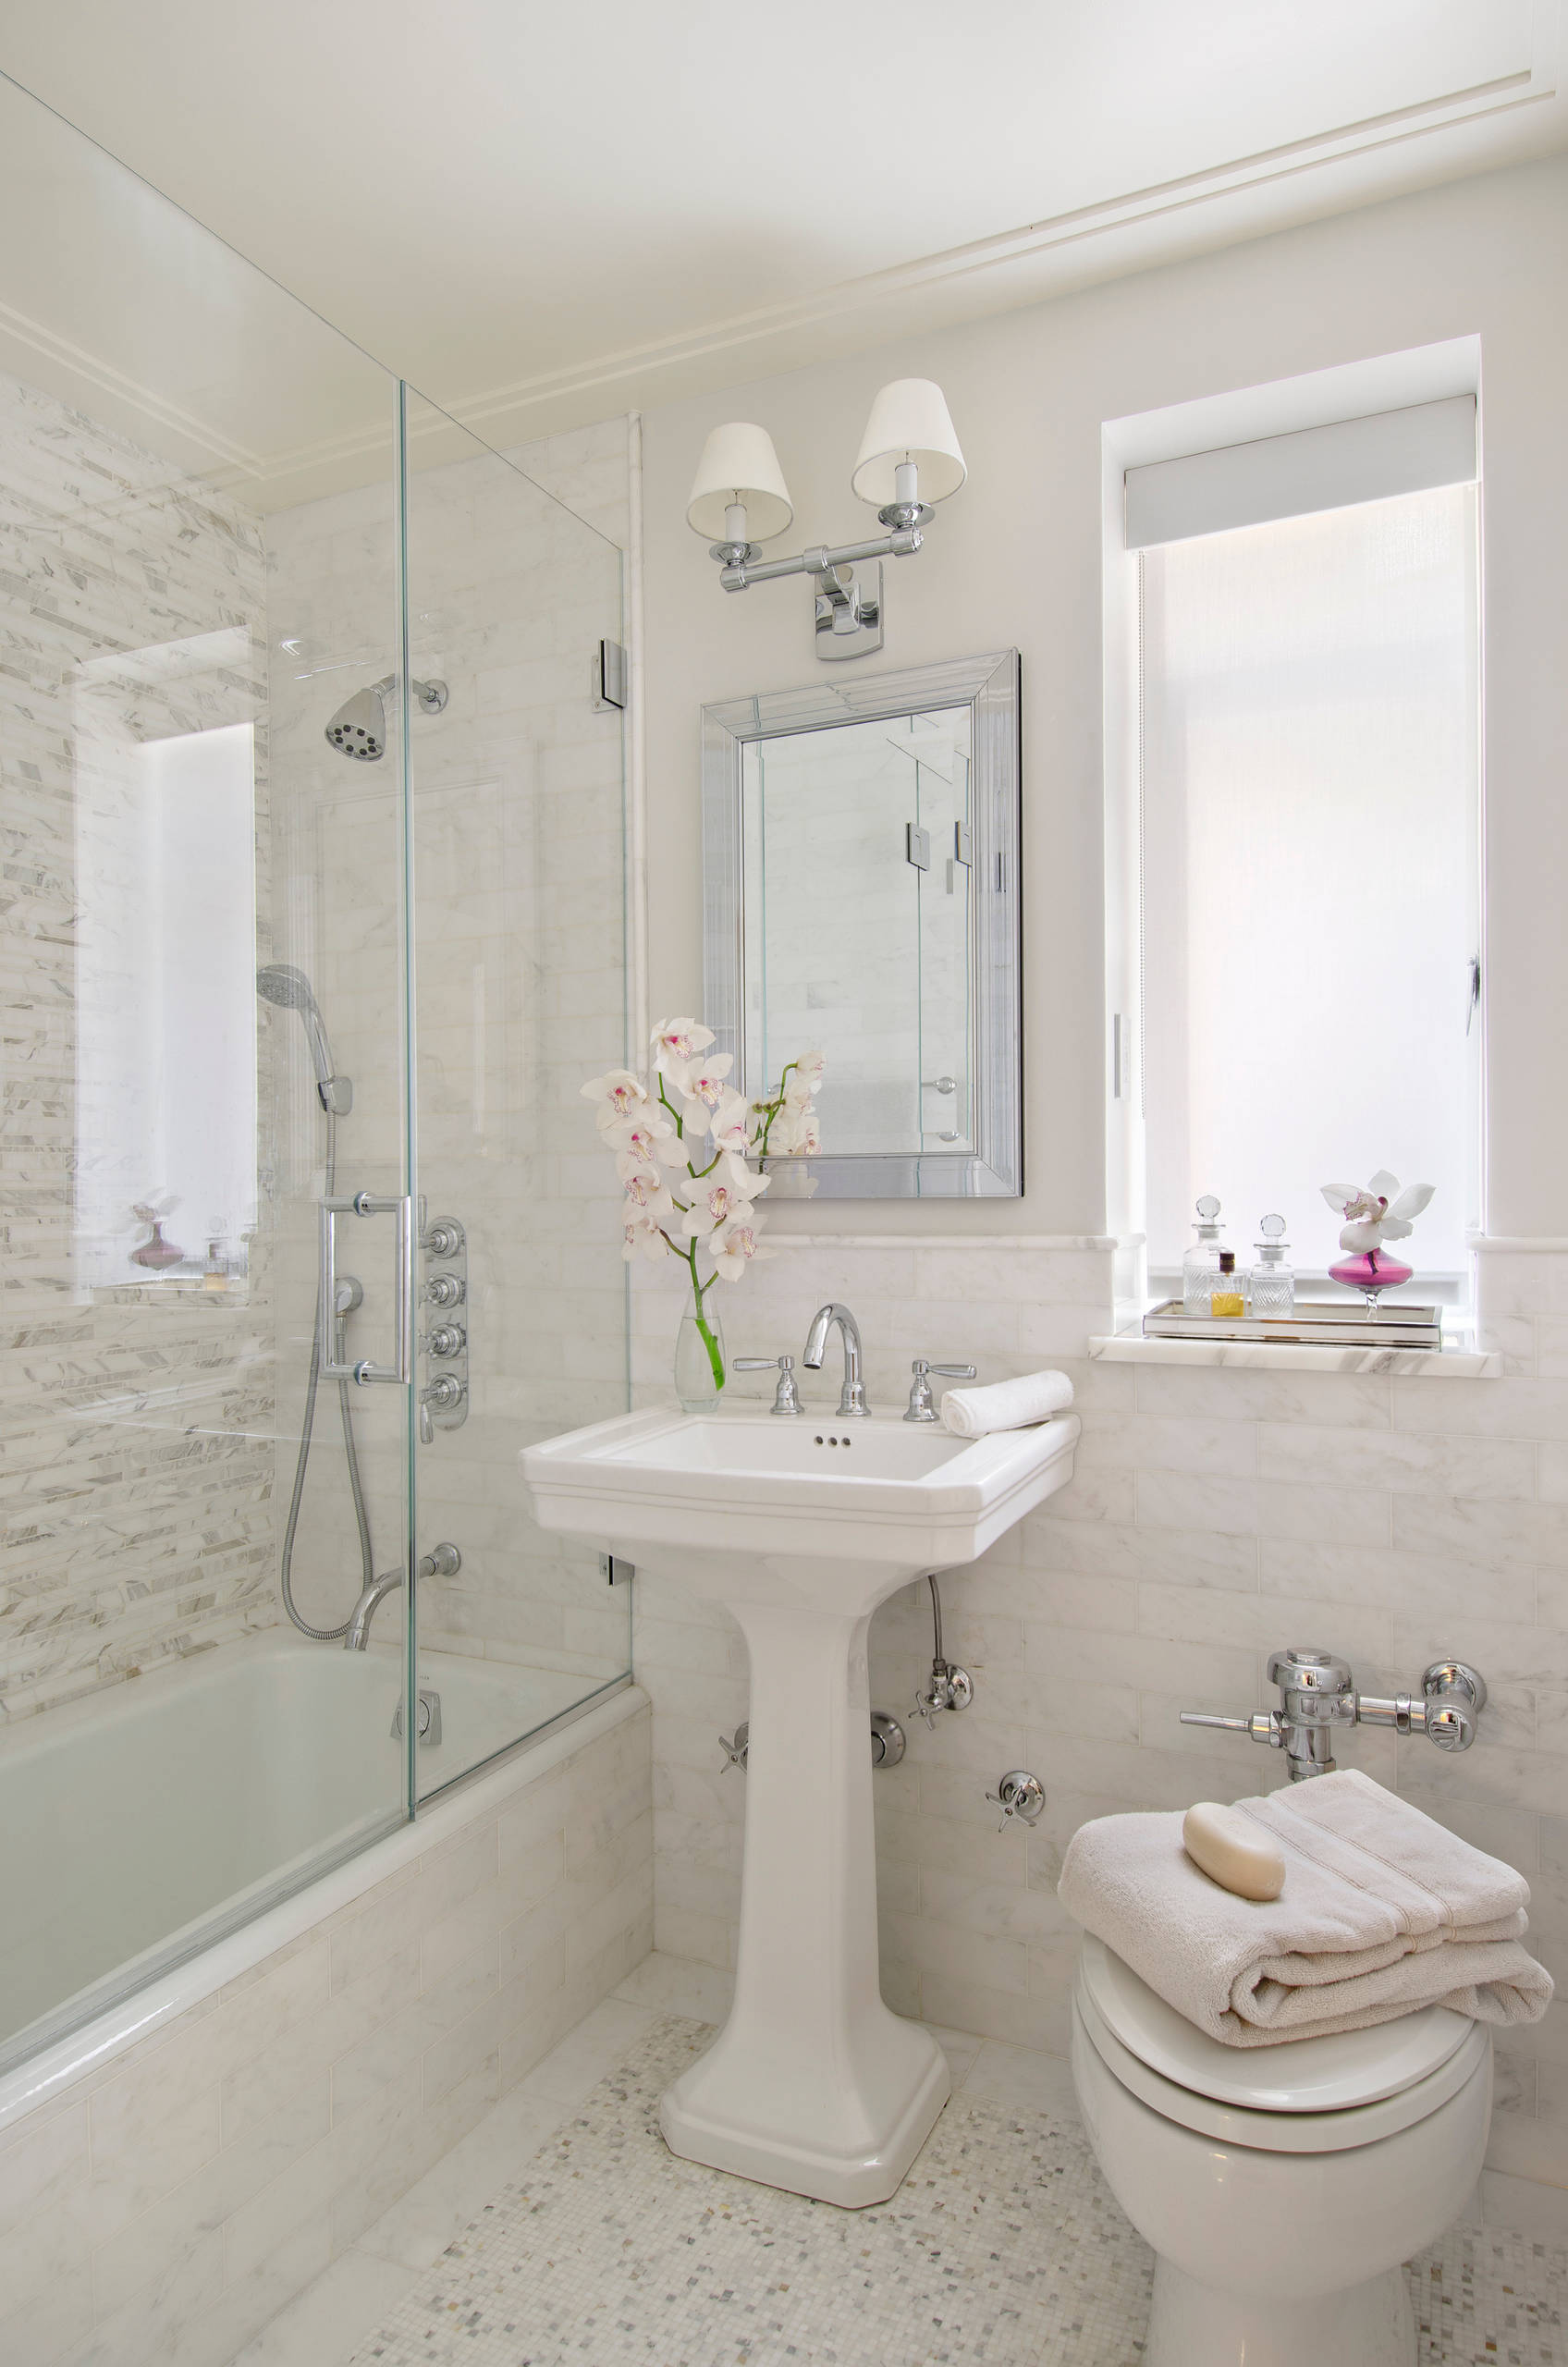 18 Beautiful Traditional Bathroom Pictures Ideas October 2020 Houzz